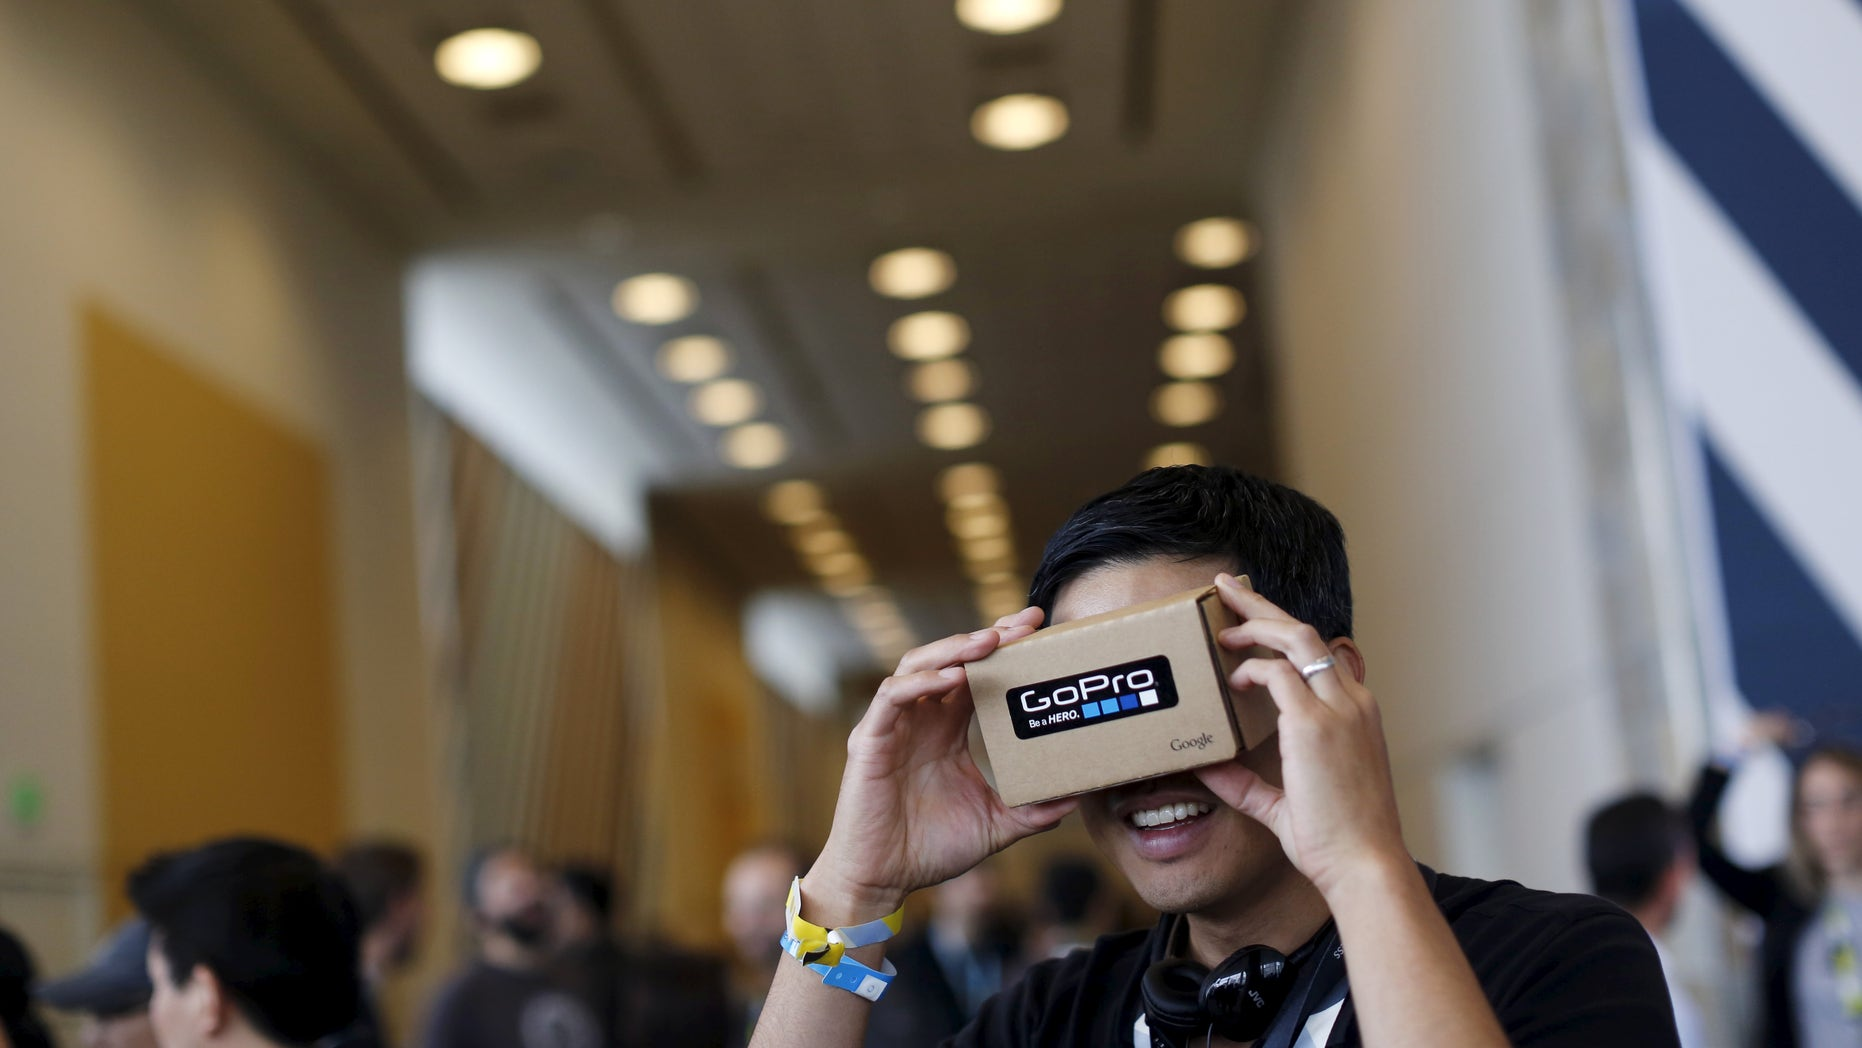 """File photo - A conference attendee looks through """"Cardboard,"""" a viewer that enables the user to view content from a smart phone in 3D, during the Google I/O developers conference in San Francisco, Calif. May 28, 2015. (REUTERS/Robert Galbraith)"""